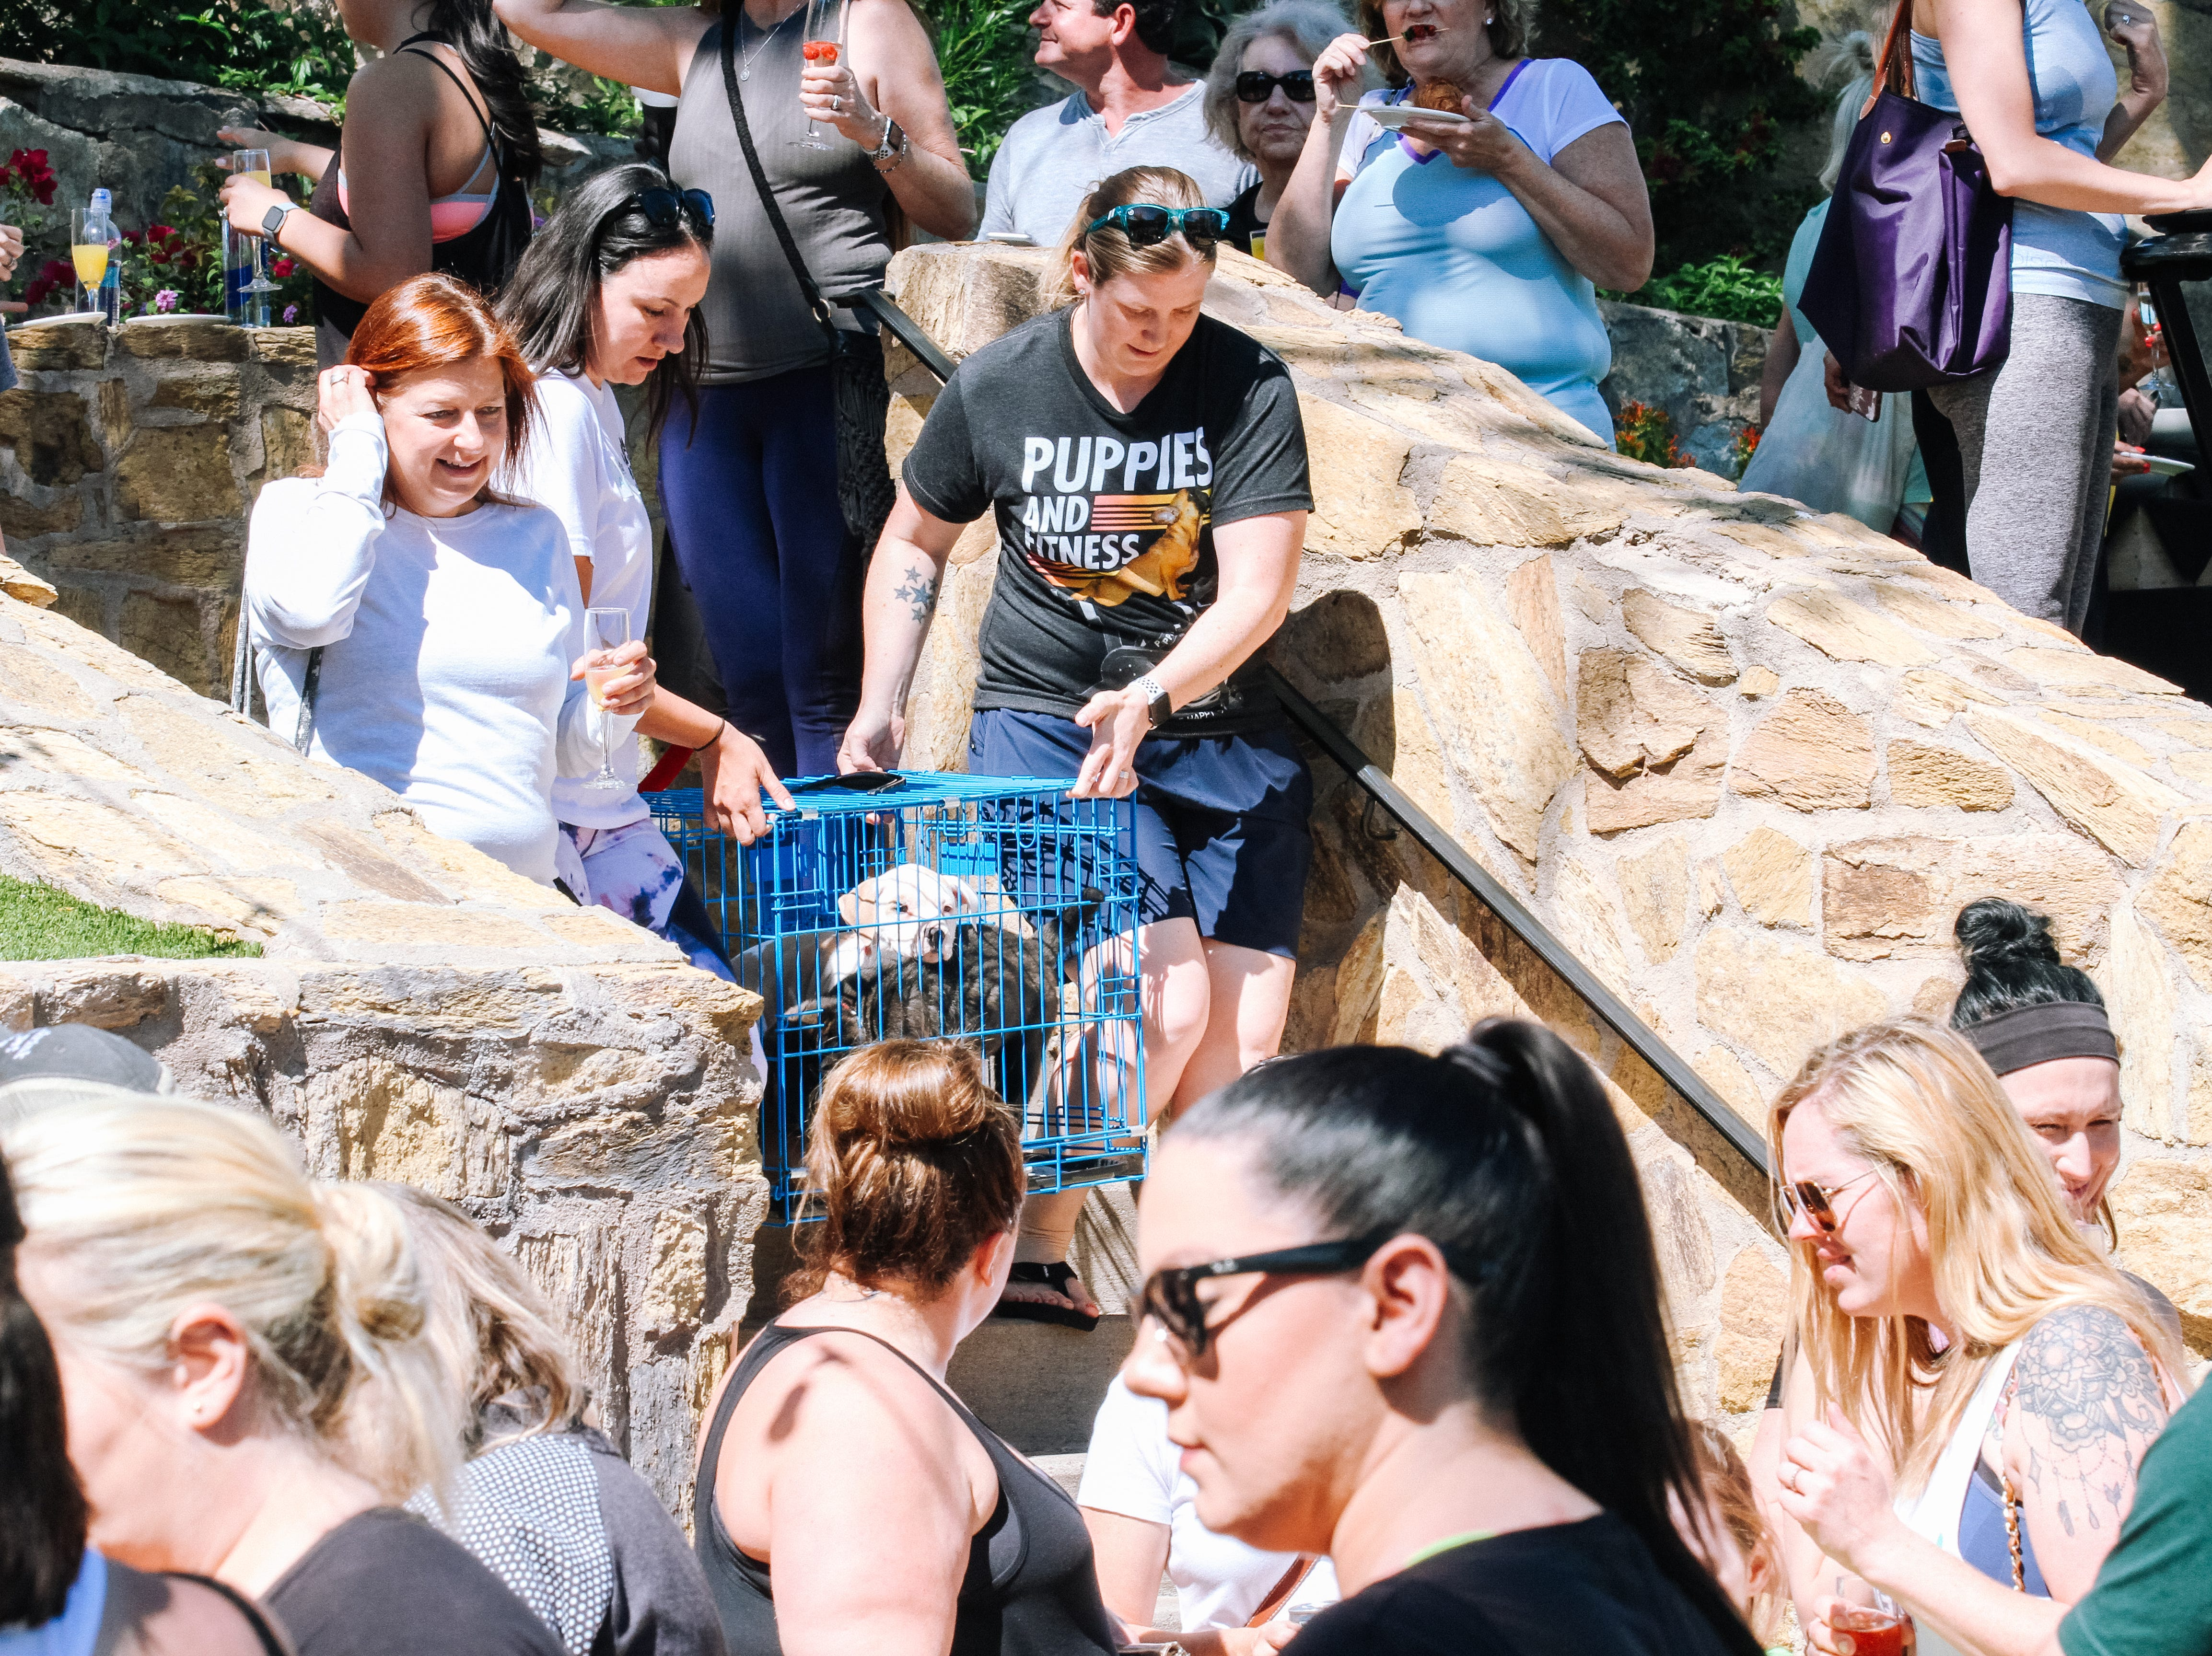 Attendees get a chance to adopt puppies at Puppies, Pilates and Prosecco, an event hosted by Almost There Foster Care at the Wrigley Mansion in Phoenix on April 13, 2019.